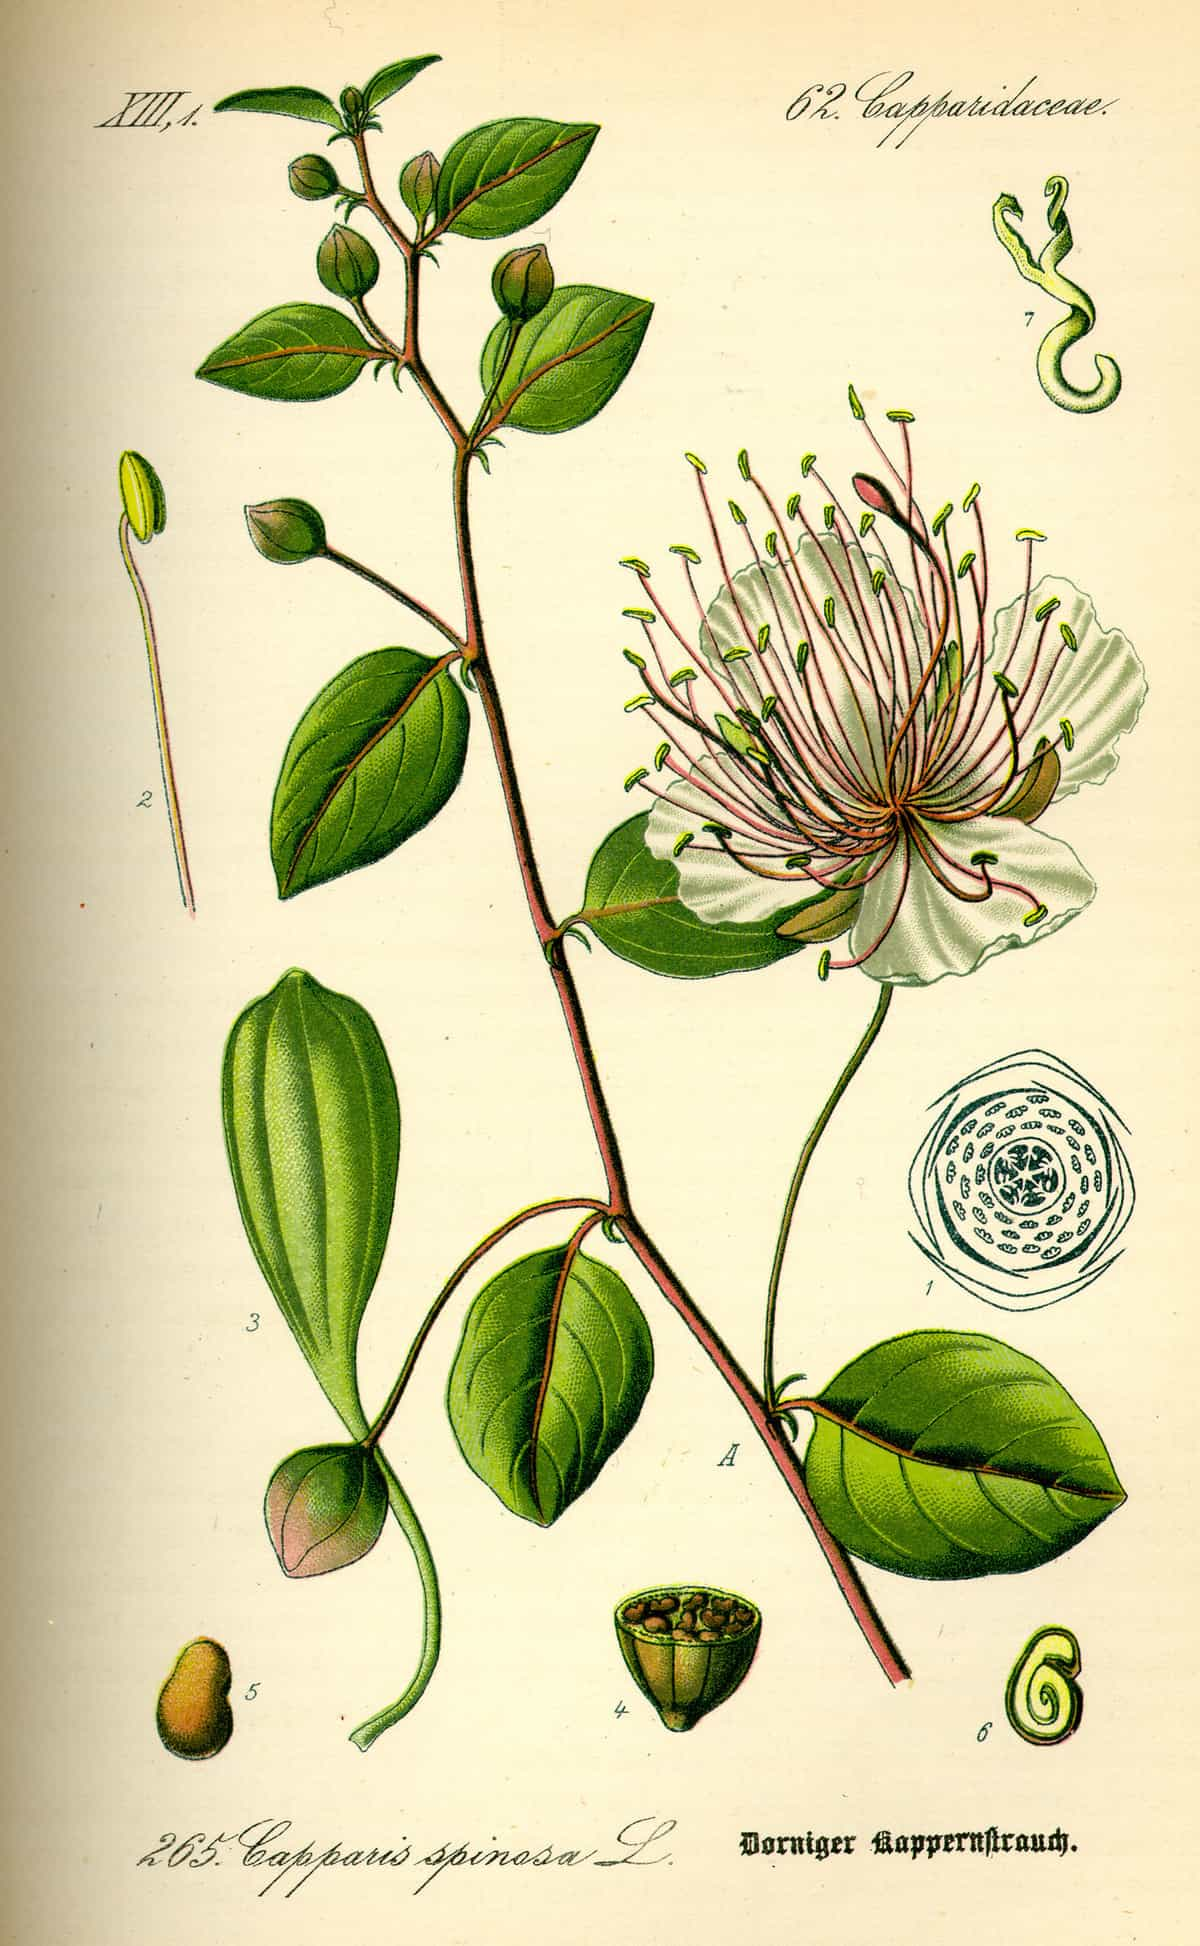 An illustration of the caper bush or Capparis spinosa.